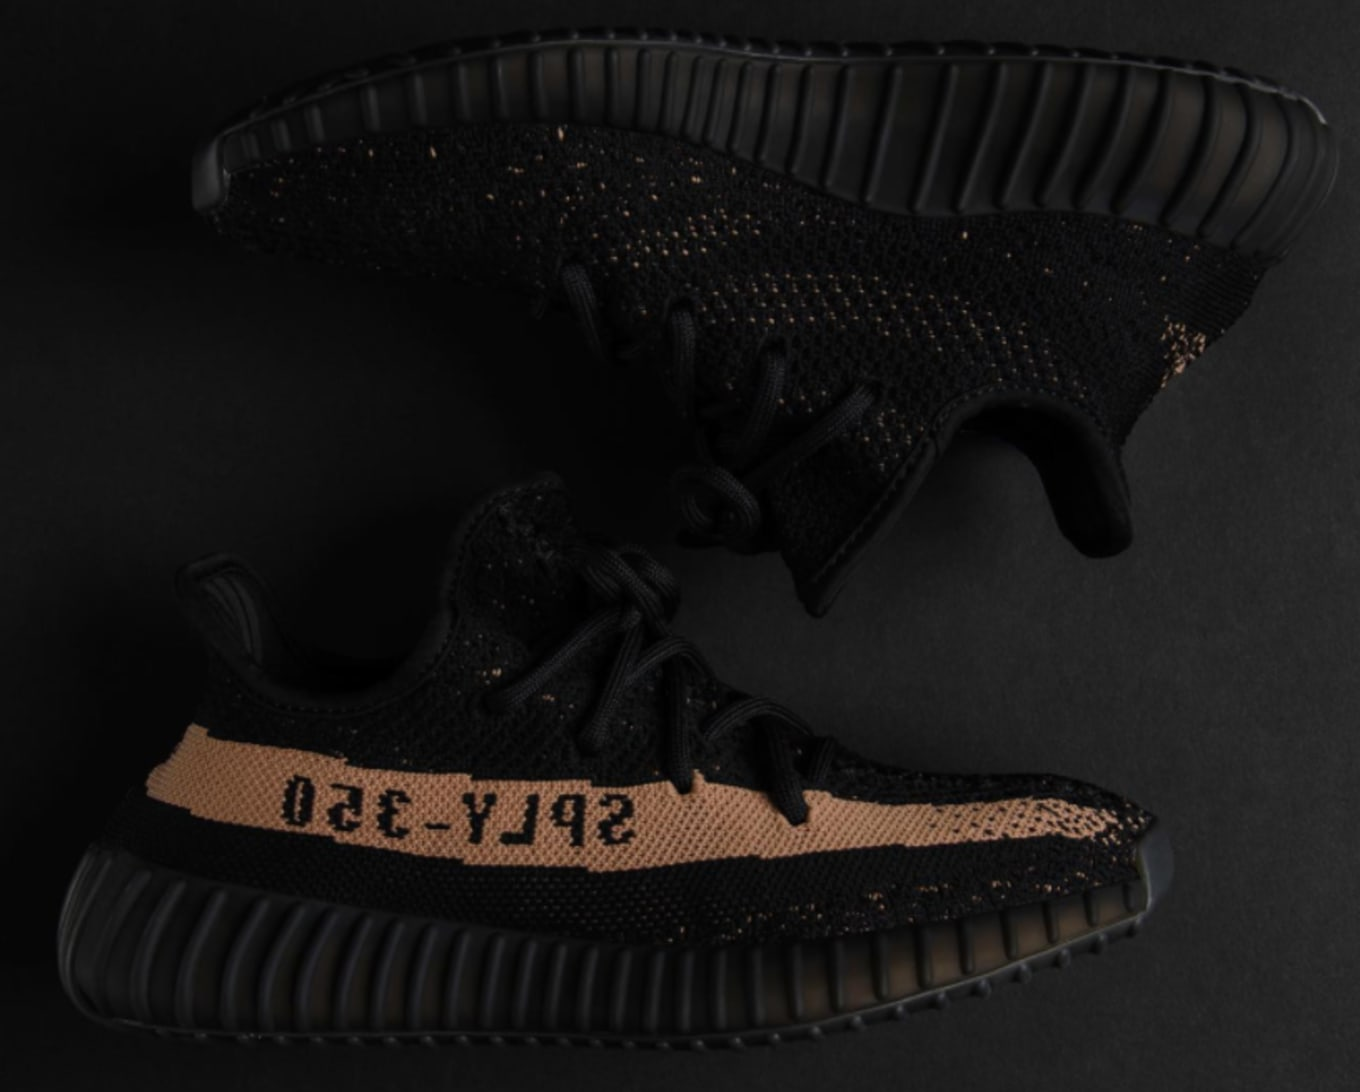 4f64931047653 Where to Get Next Week s Adidas Yeezy 350 Boost V2s. Foot Locker will have  the sneakers.